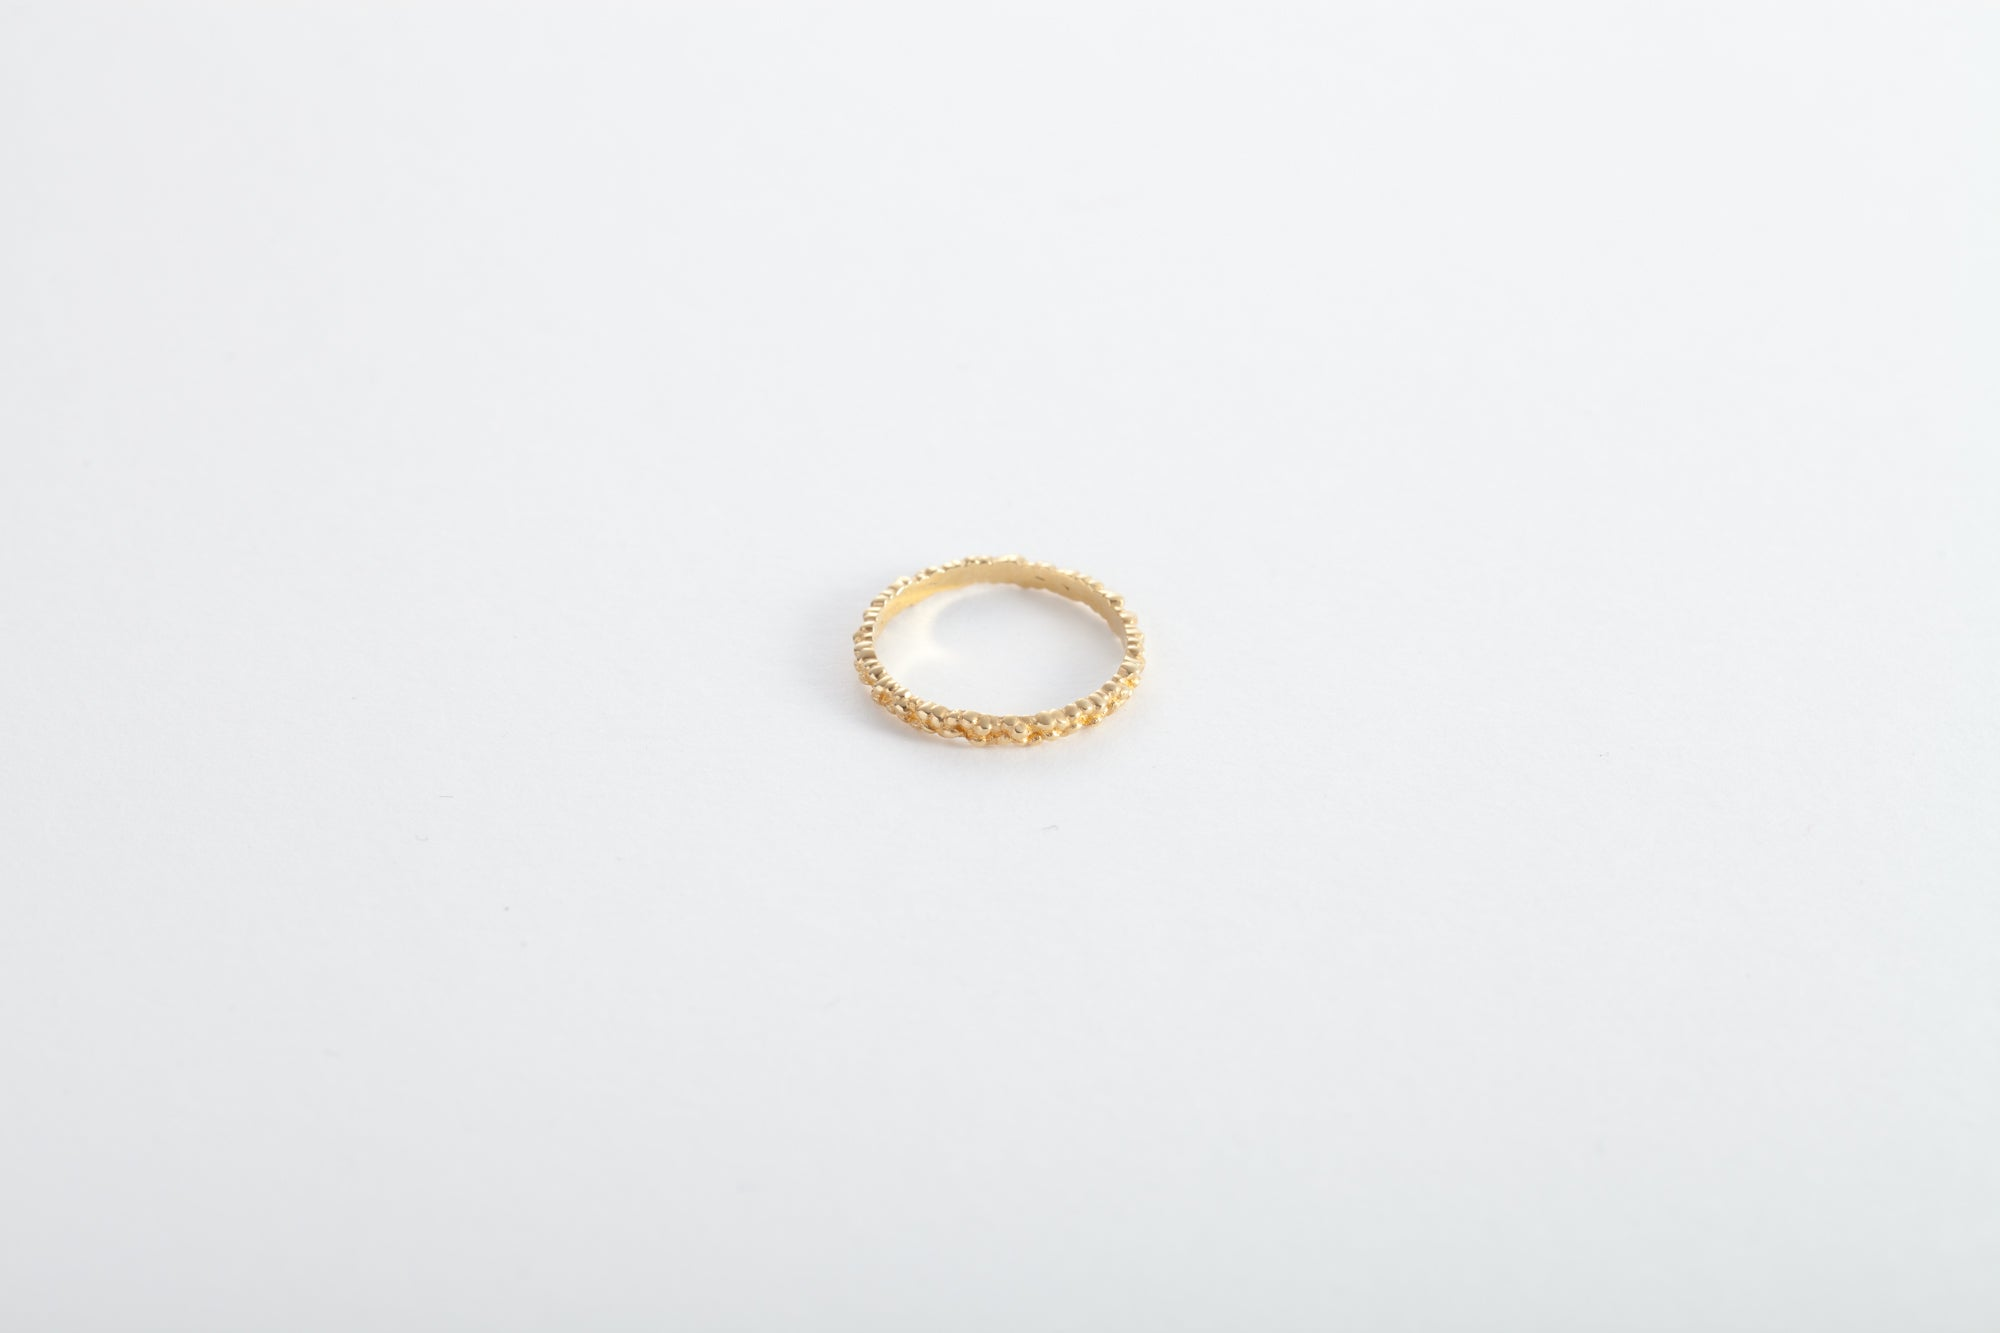 18k Gold Grains of Life Ring